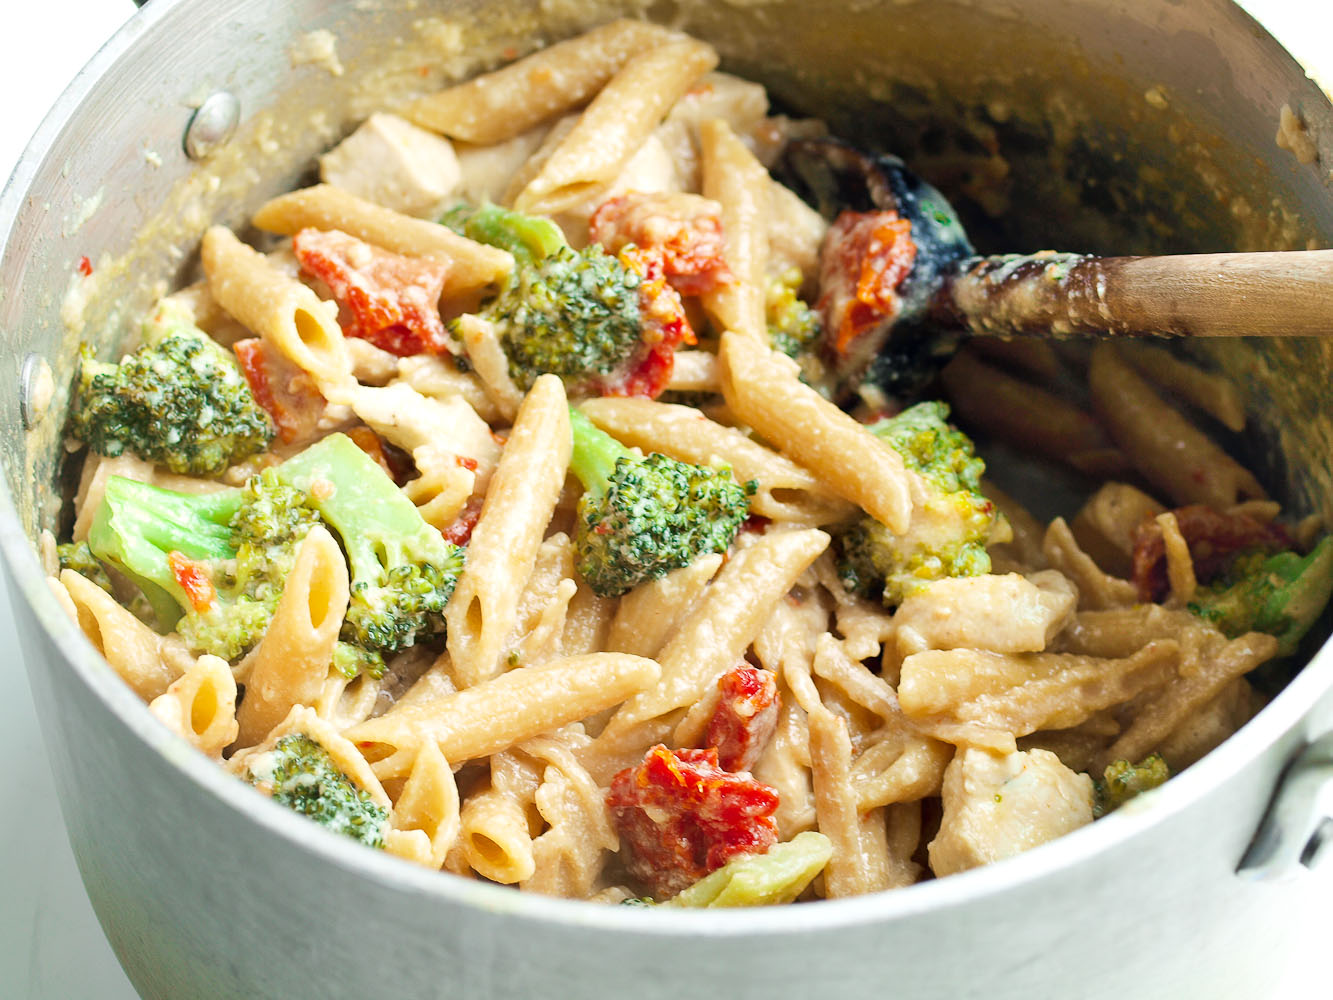 Tangy One Pot Chicken and Veggie Pasta Dinner | Healthy ...